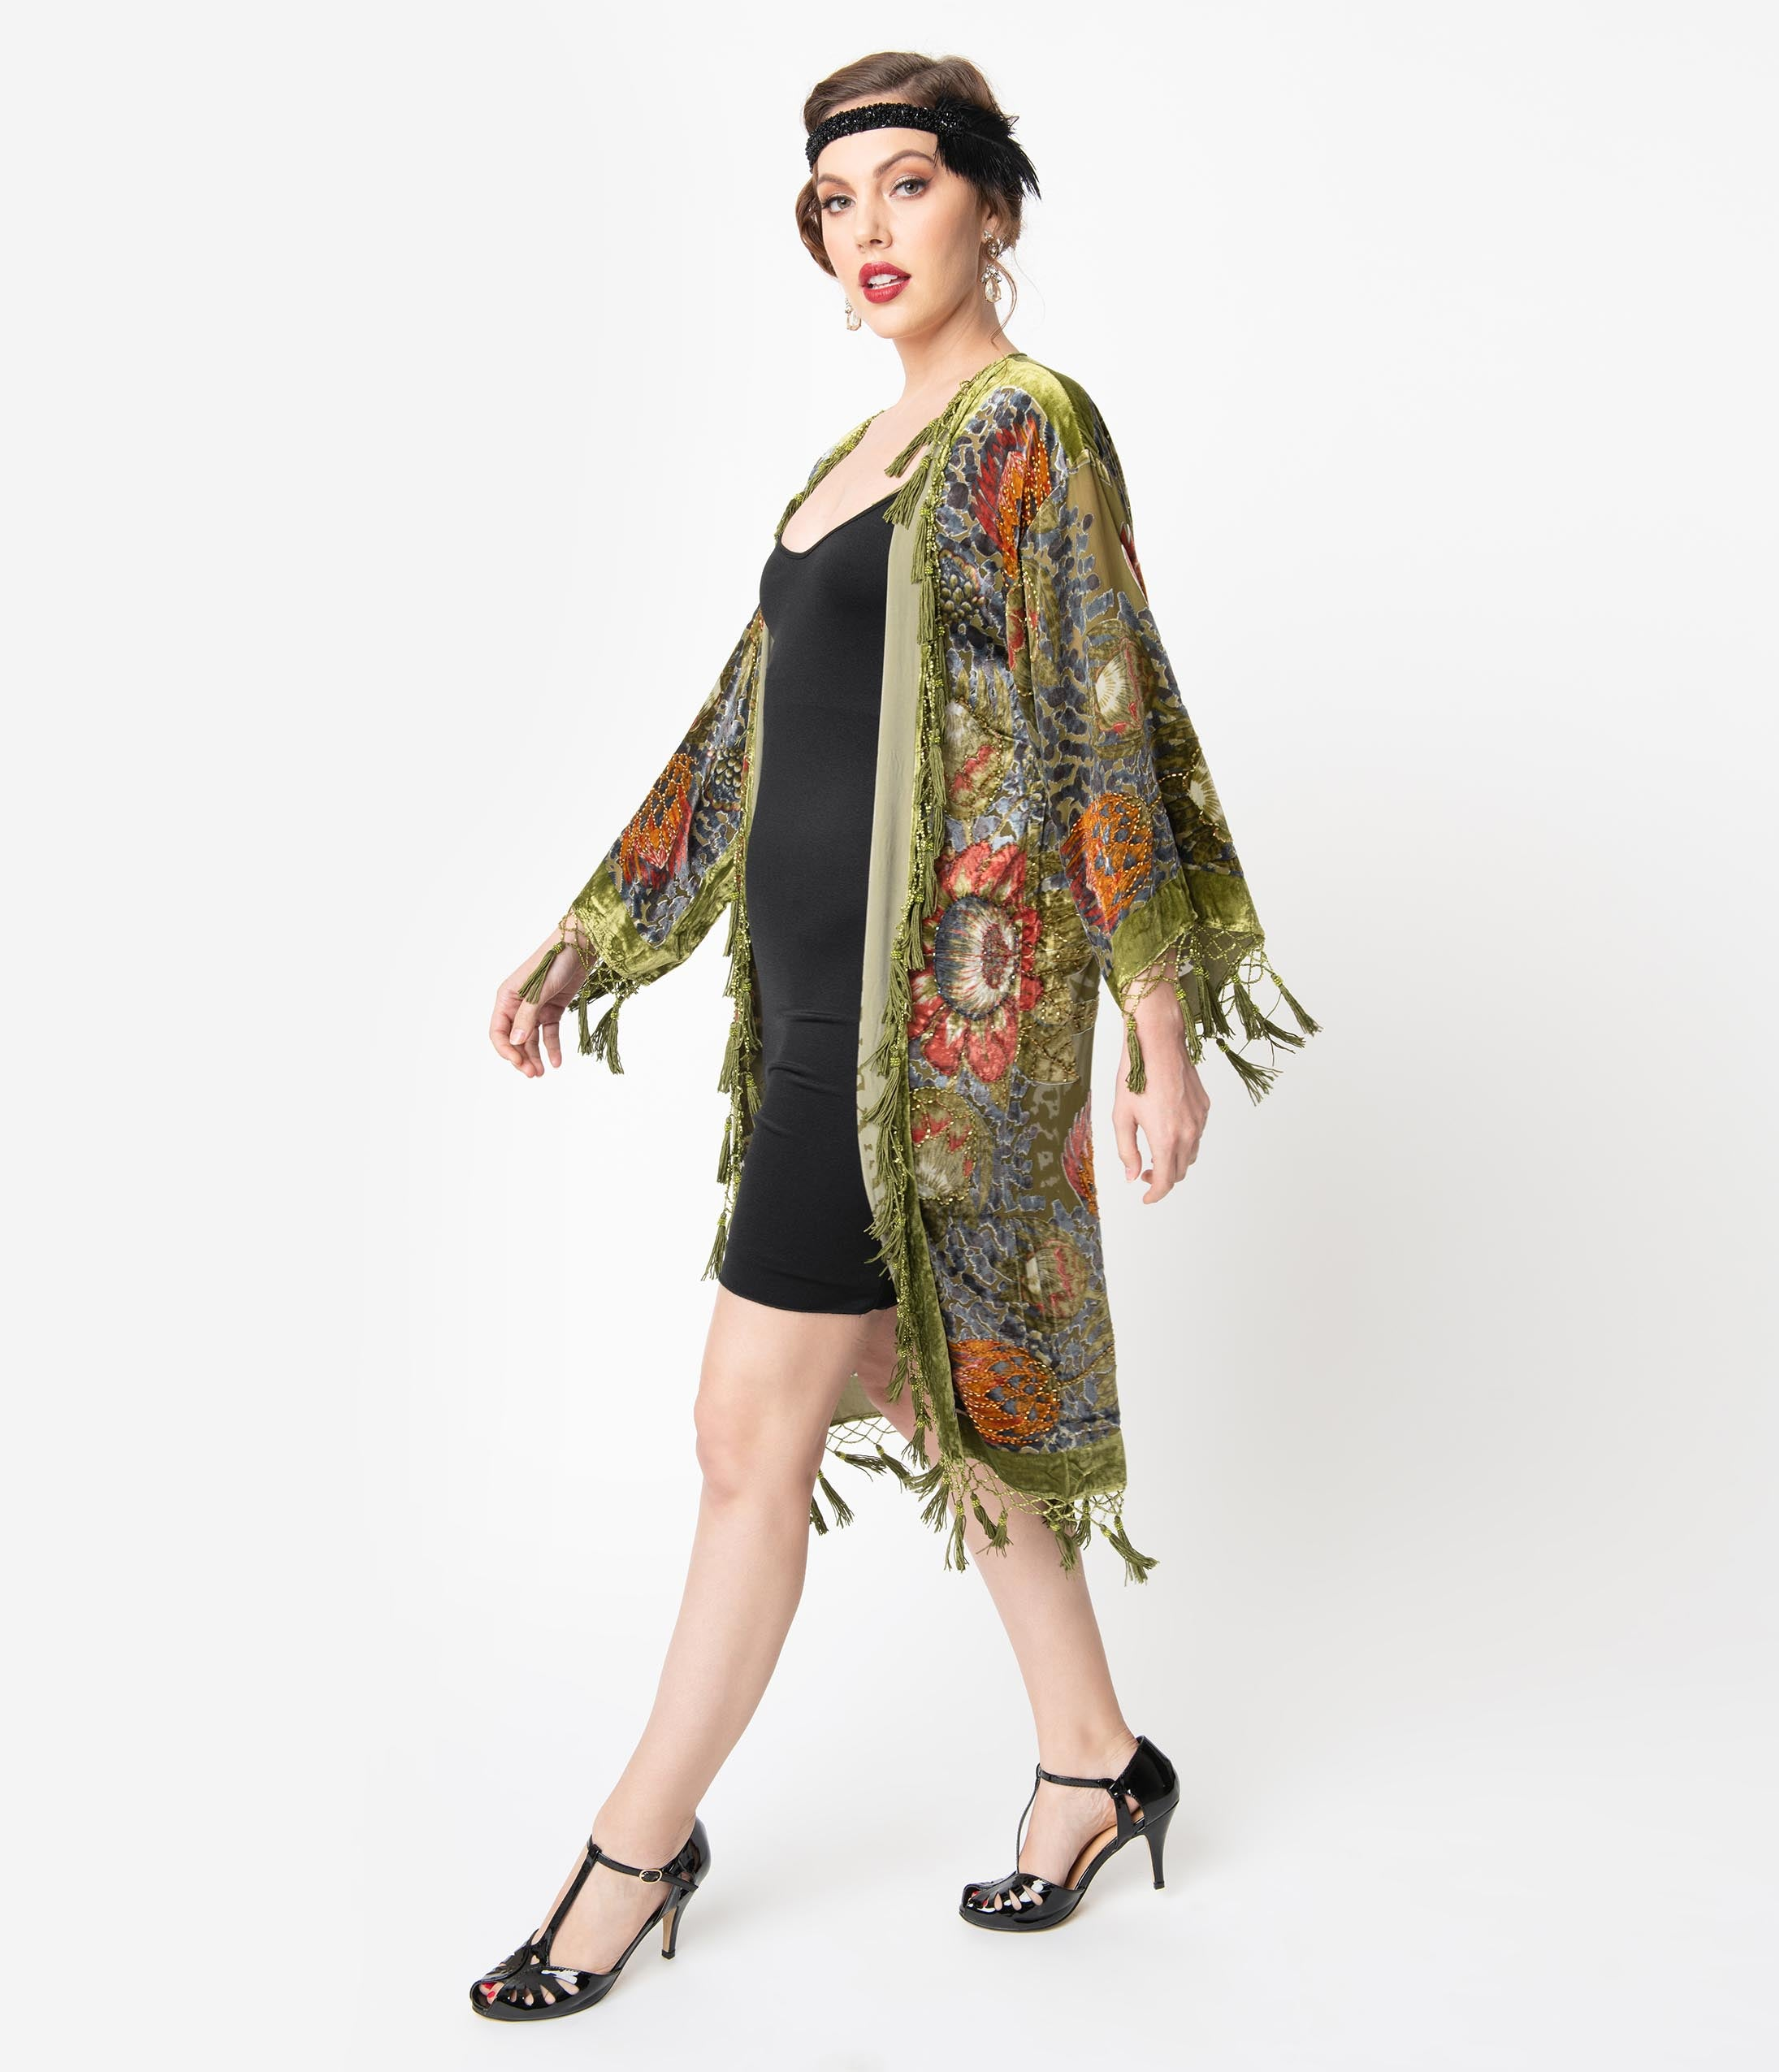 Vintage Coats & Jackets | Retro Coats and Jackets Vintage Style Olive Green Tassel Floral Devore Velvet Beaded Flapper Coat $218.00 AT vintagedancer.com